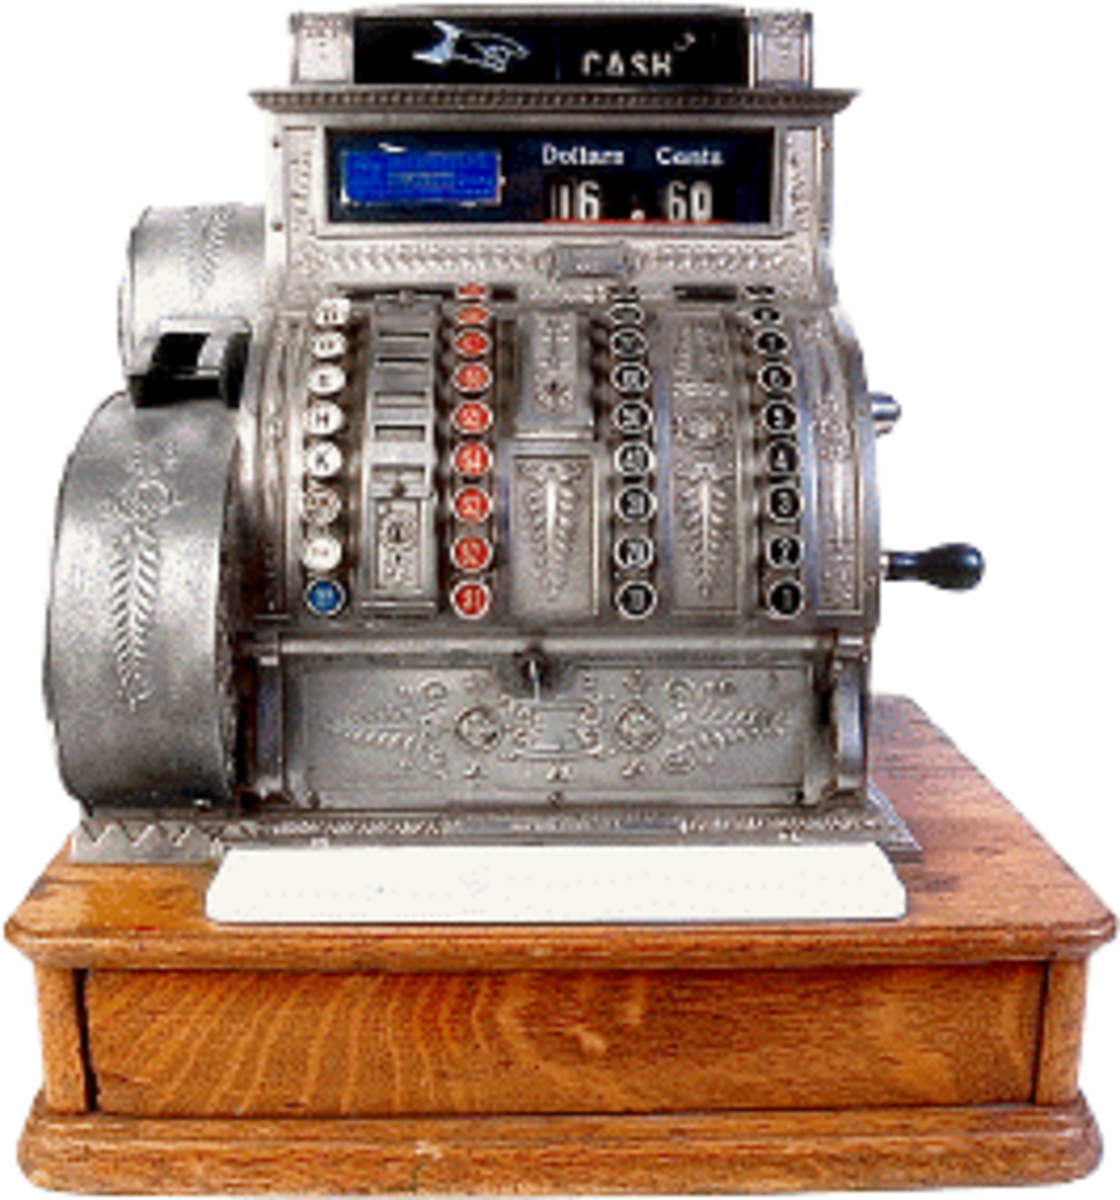 An old manual cash register is a good item for pickers to sell.